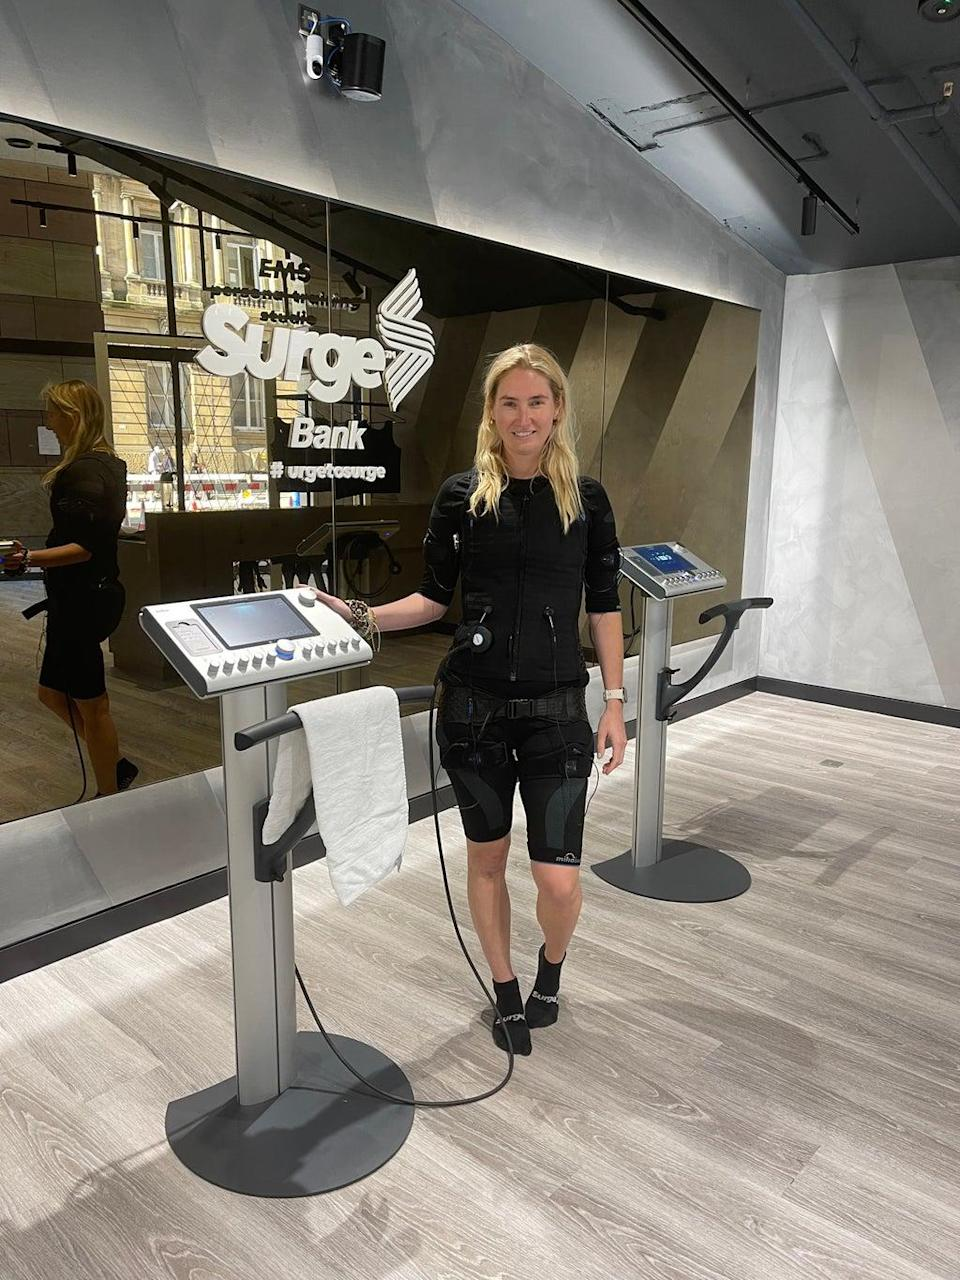 (Rosie Fitzmaurice trying out EMS at Surge, Bank)